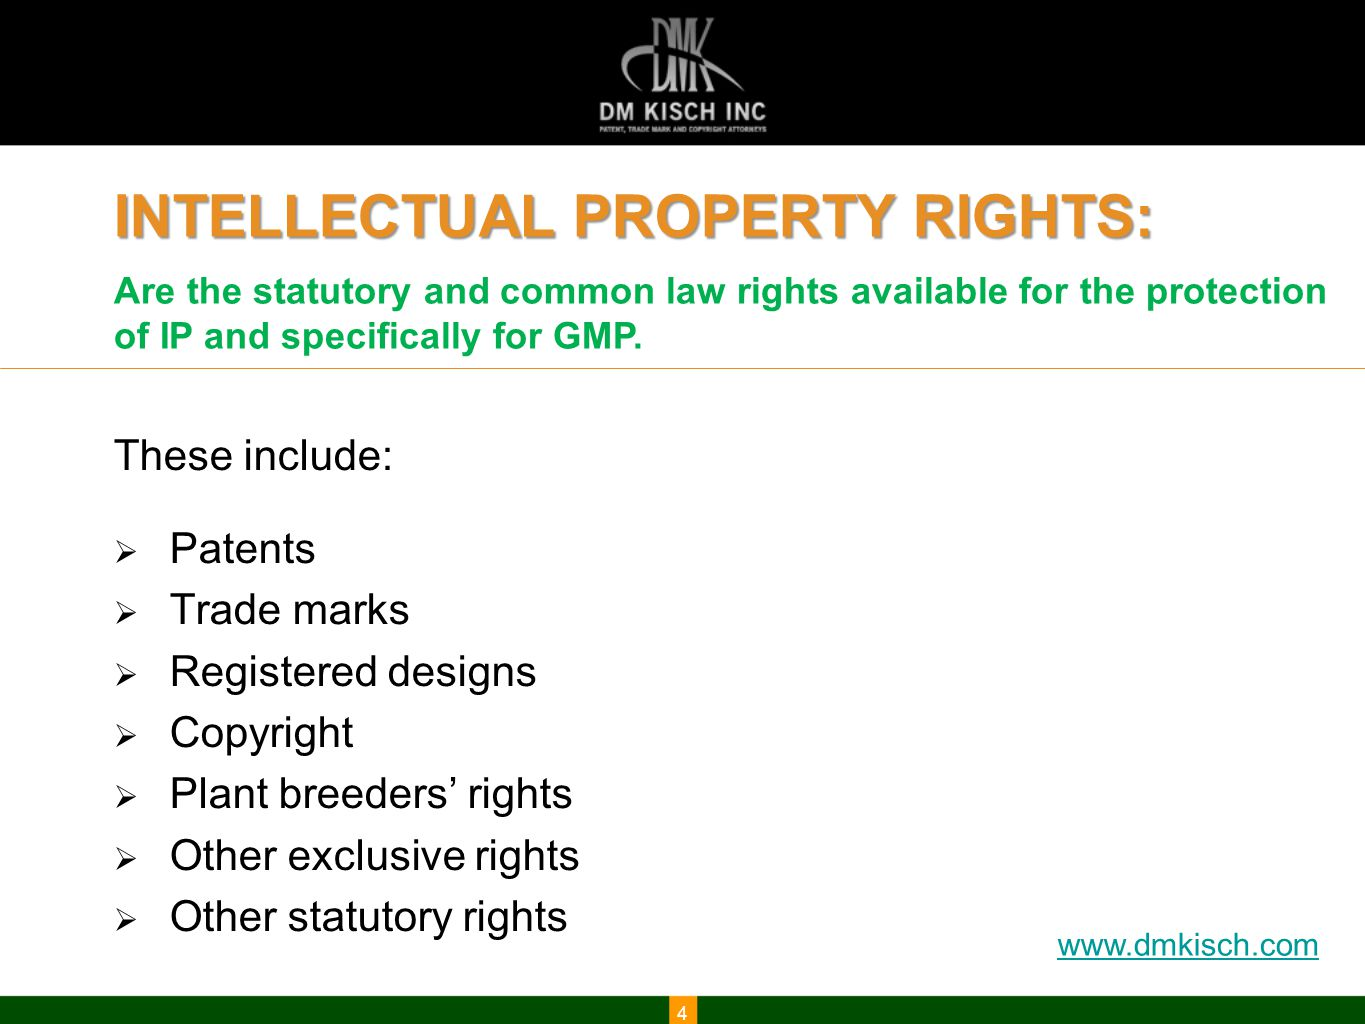 www.dmkisch.com INTELLECTUAL PROPERTY RIGHTS: These include:  Patents  Trade marks  Registered designs  Copyright  Plant breeders' rights  Other exclusive rights  Other statutory rights 4 Are the statutory and common law rights available for the protection of IP and specifically for GMP.